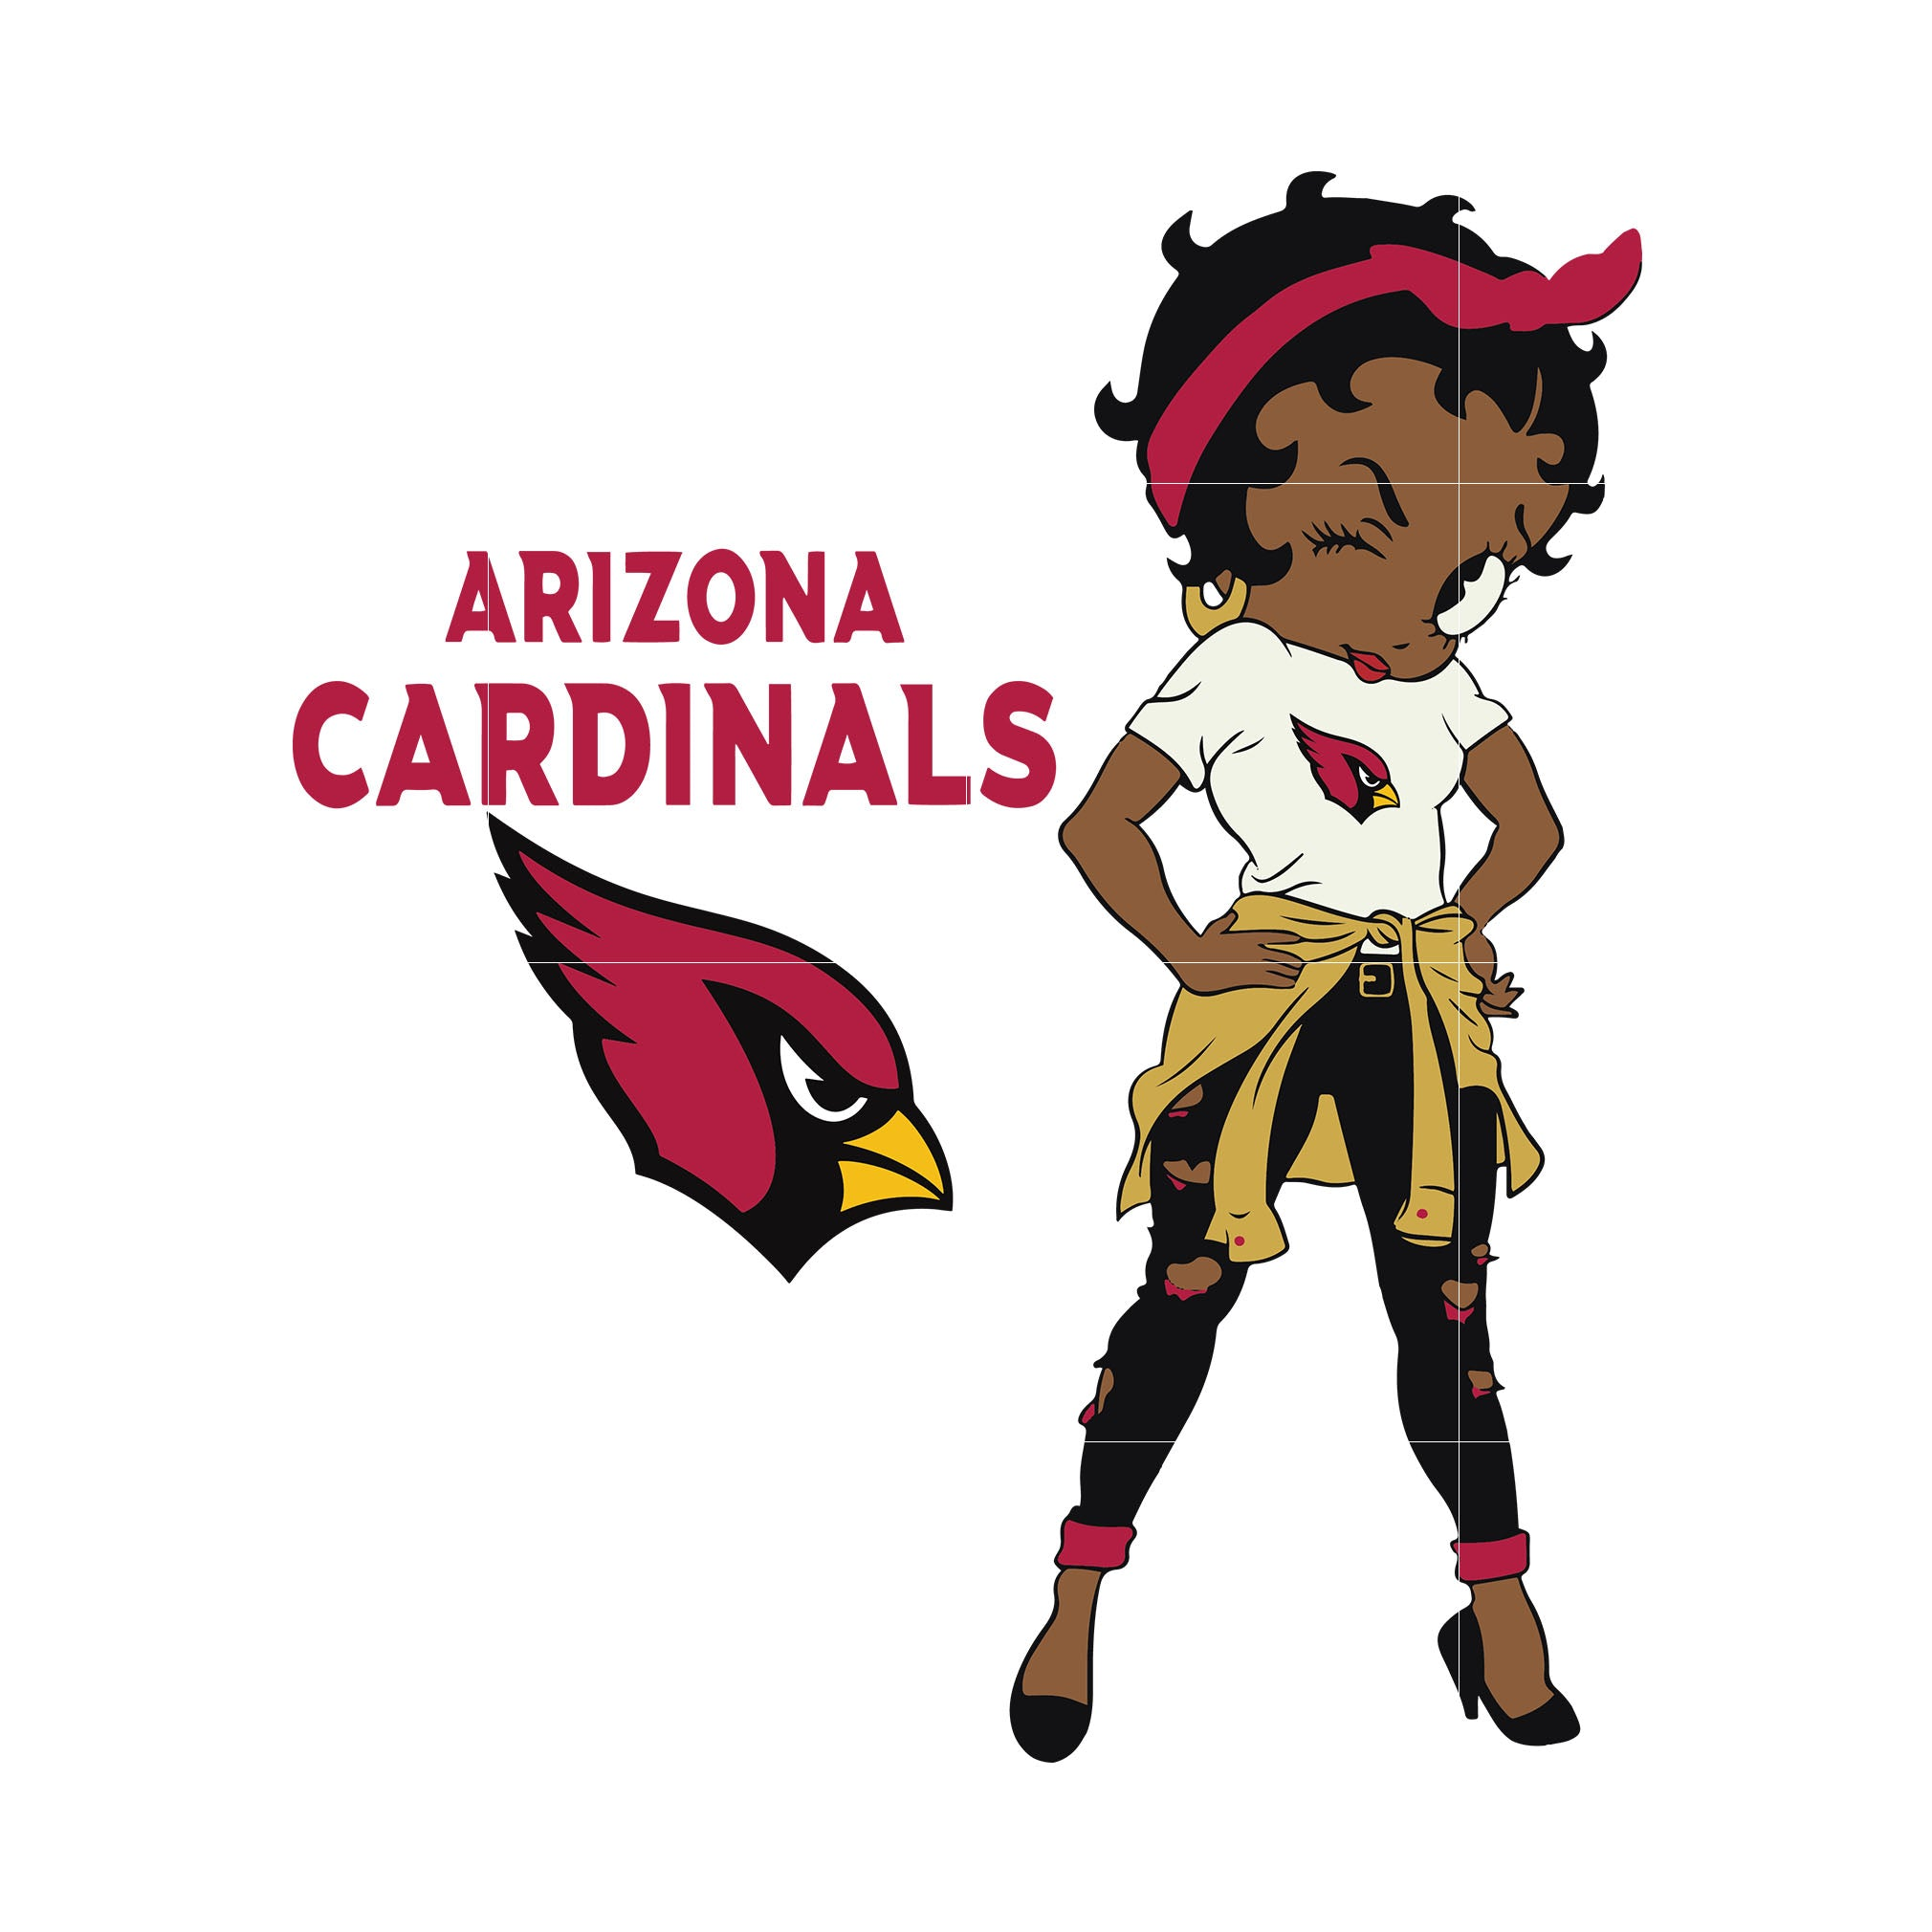 Betty boop Arizona Cardinals,  Arizona Cardinals svg, png, dxf, eps. INSTANT DOWNLOAD